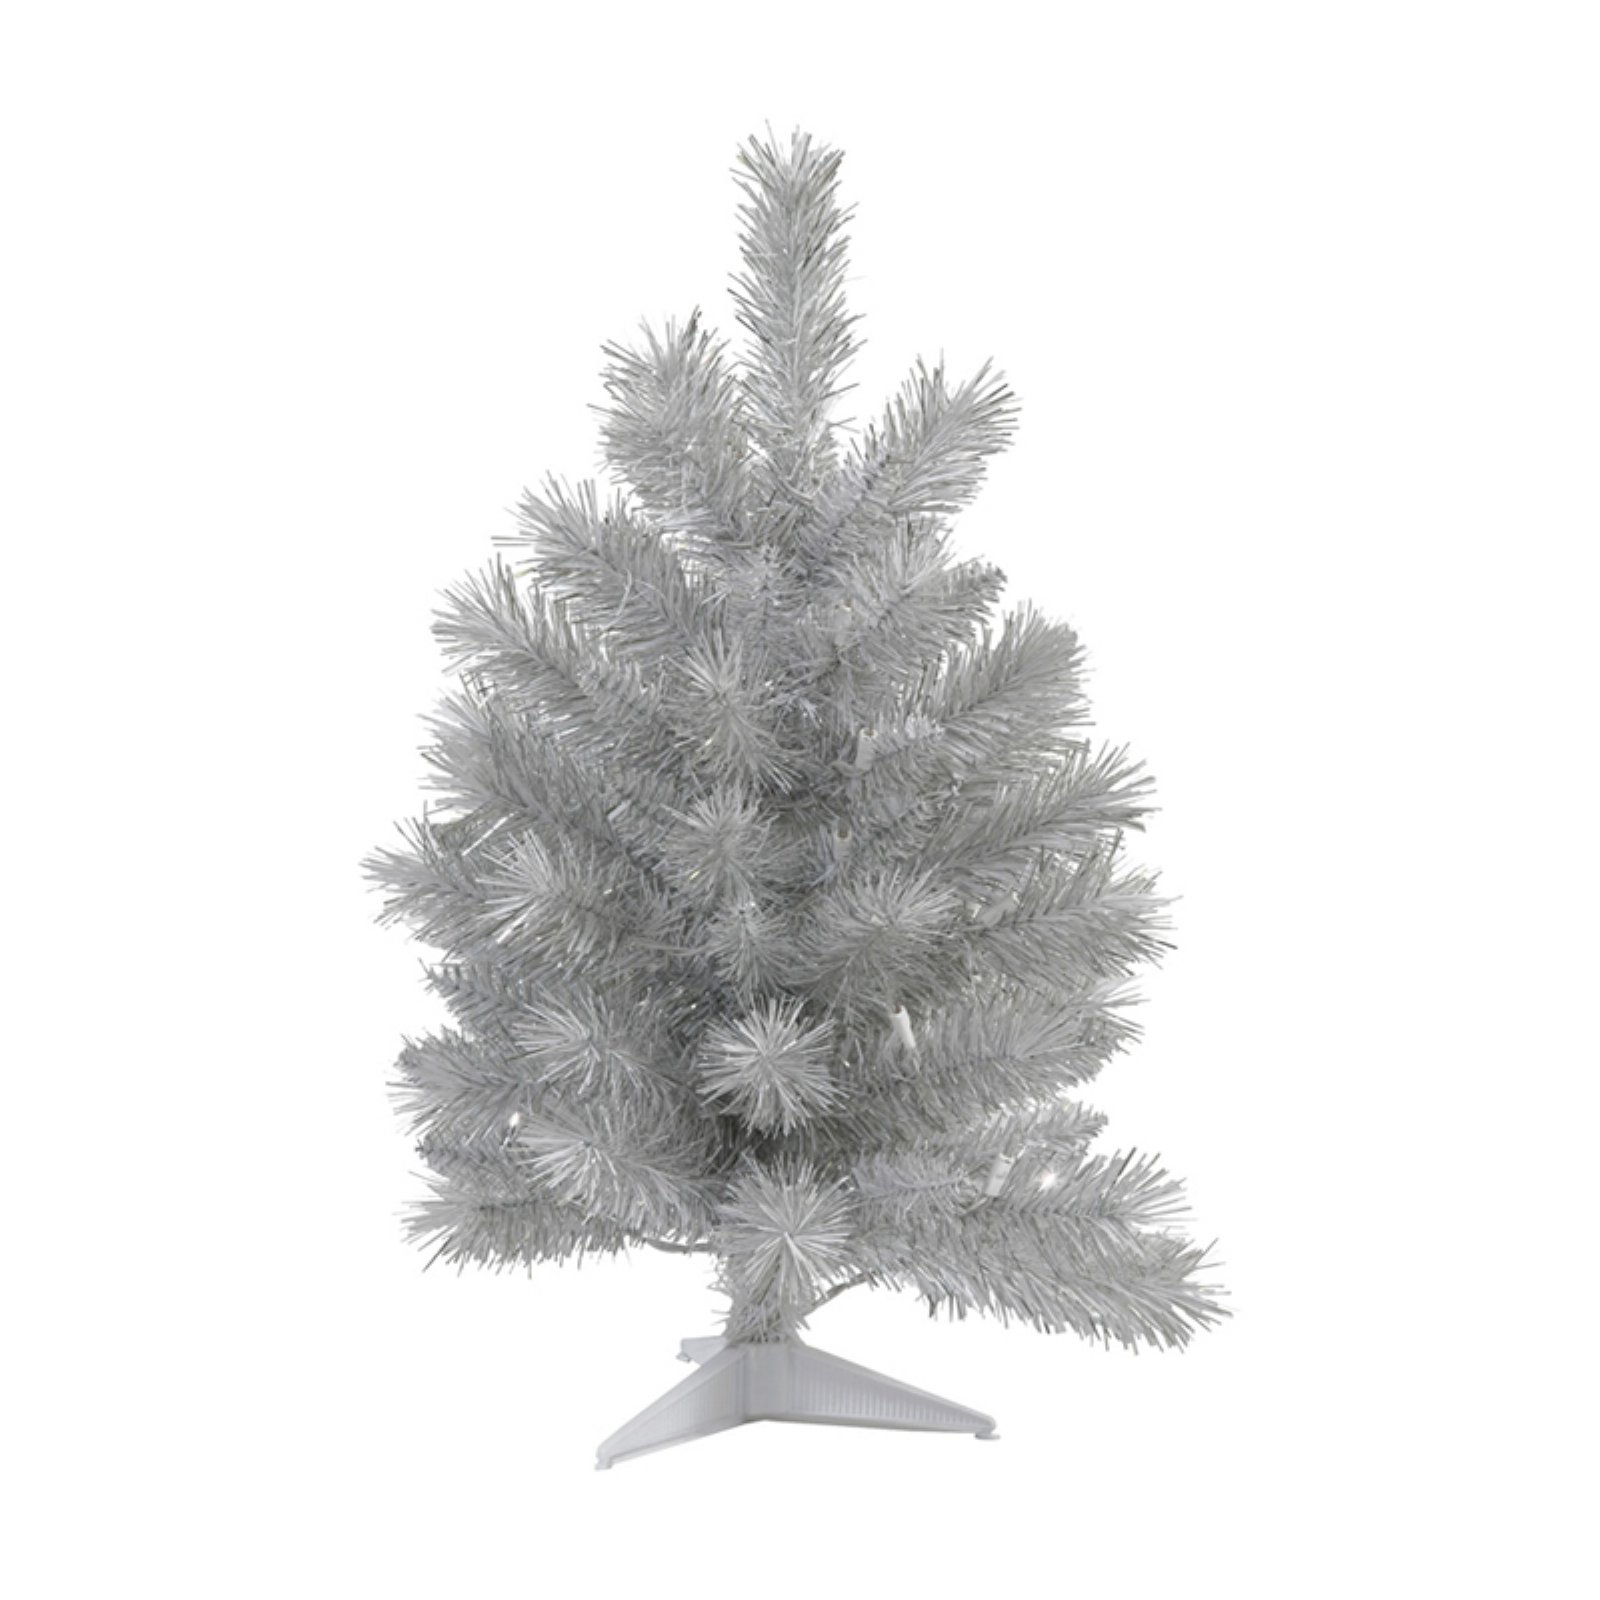 Vickerman 3' Silver White Artificial Tree featuring 132 PVC Tips.  Tree stand is included.